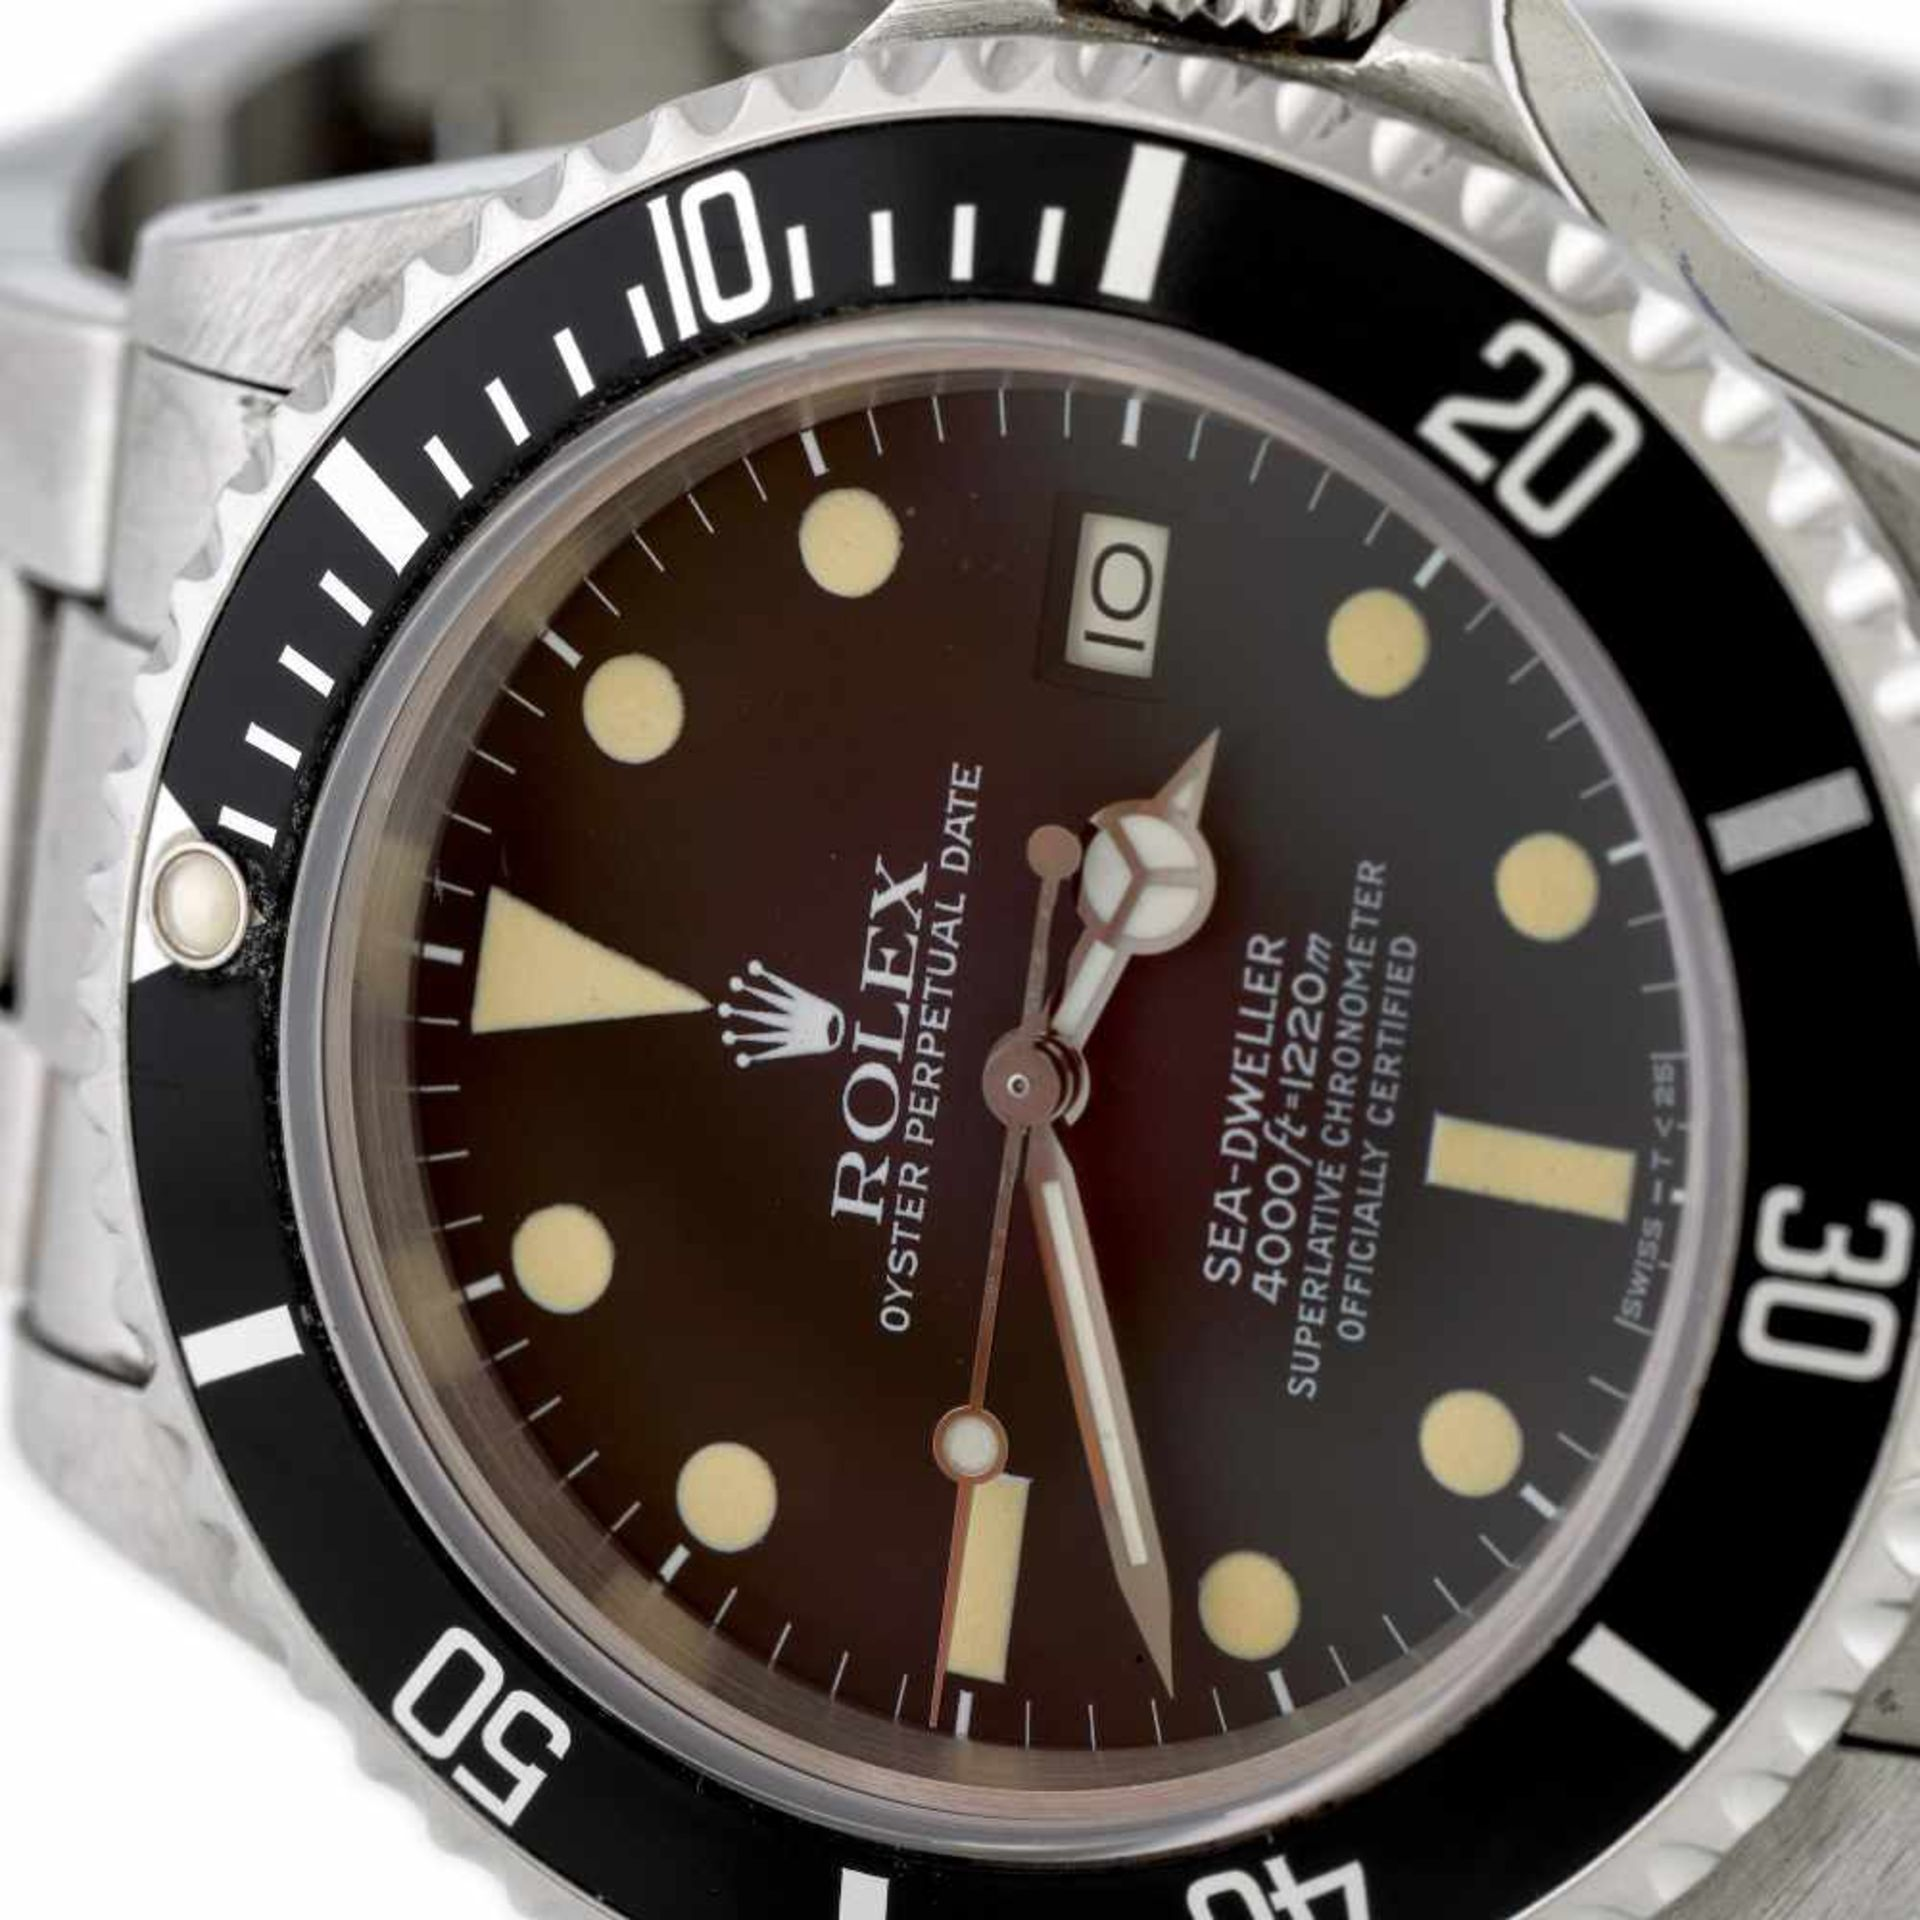 Rolex Sea-Dweller wristwatch, men - Bild 3 aus 3